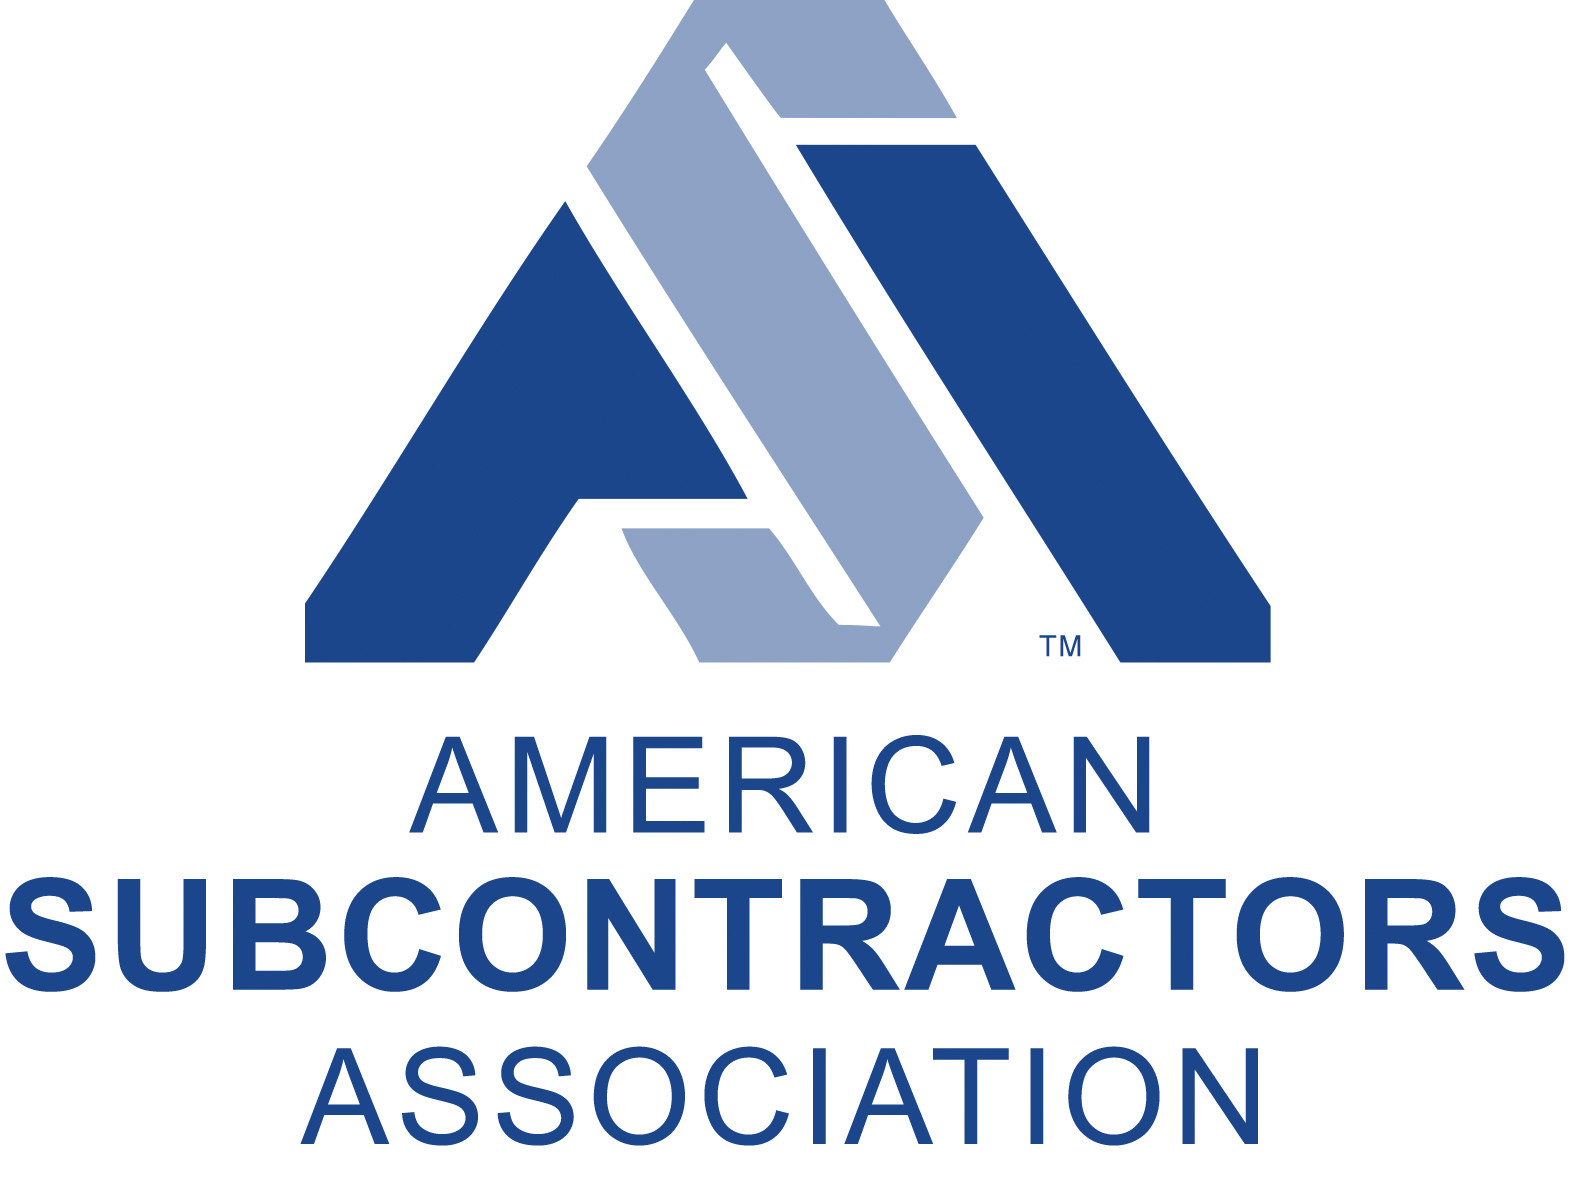 American Subcontractors Association - National (ASA)